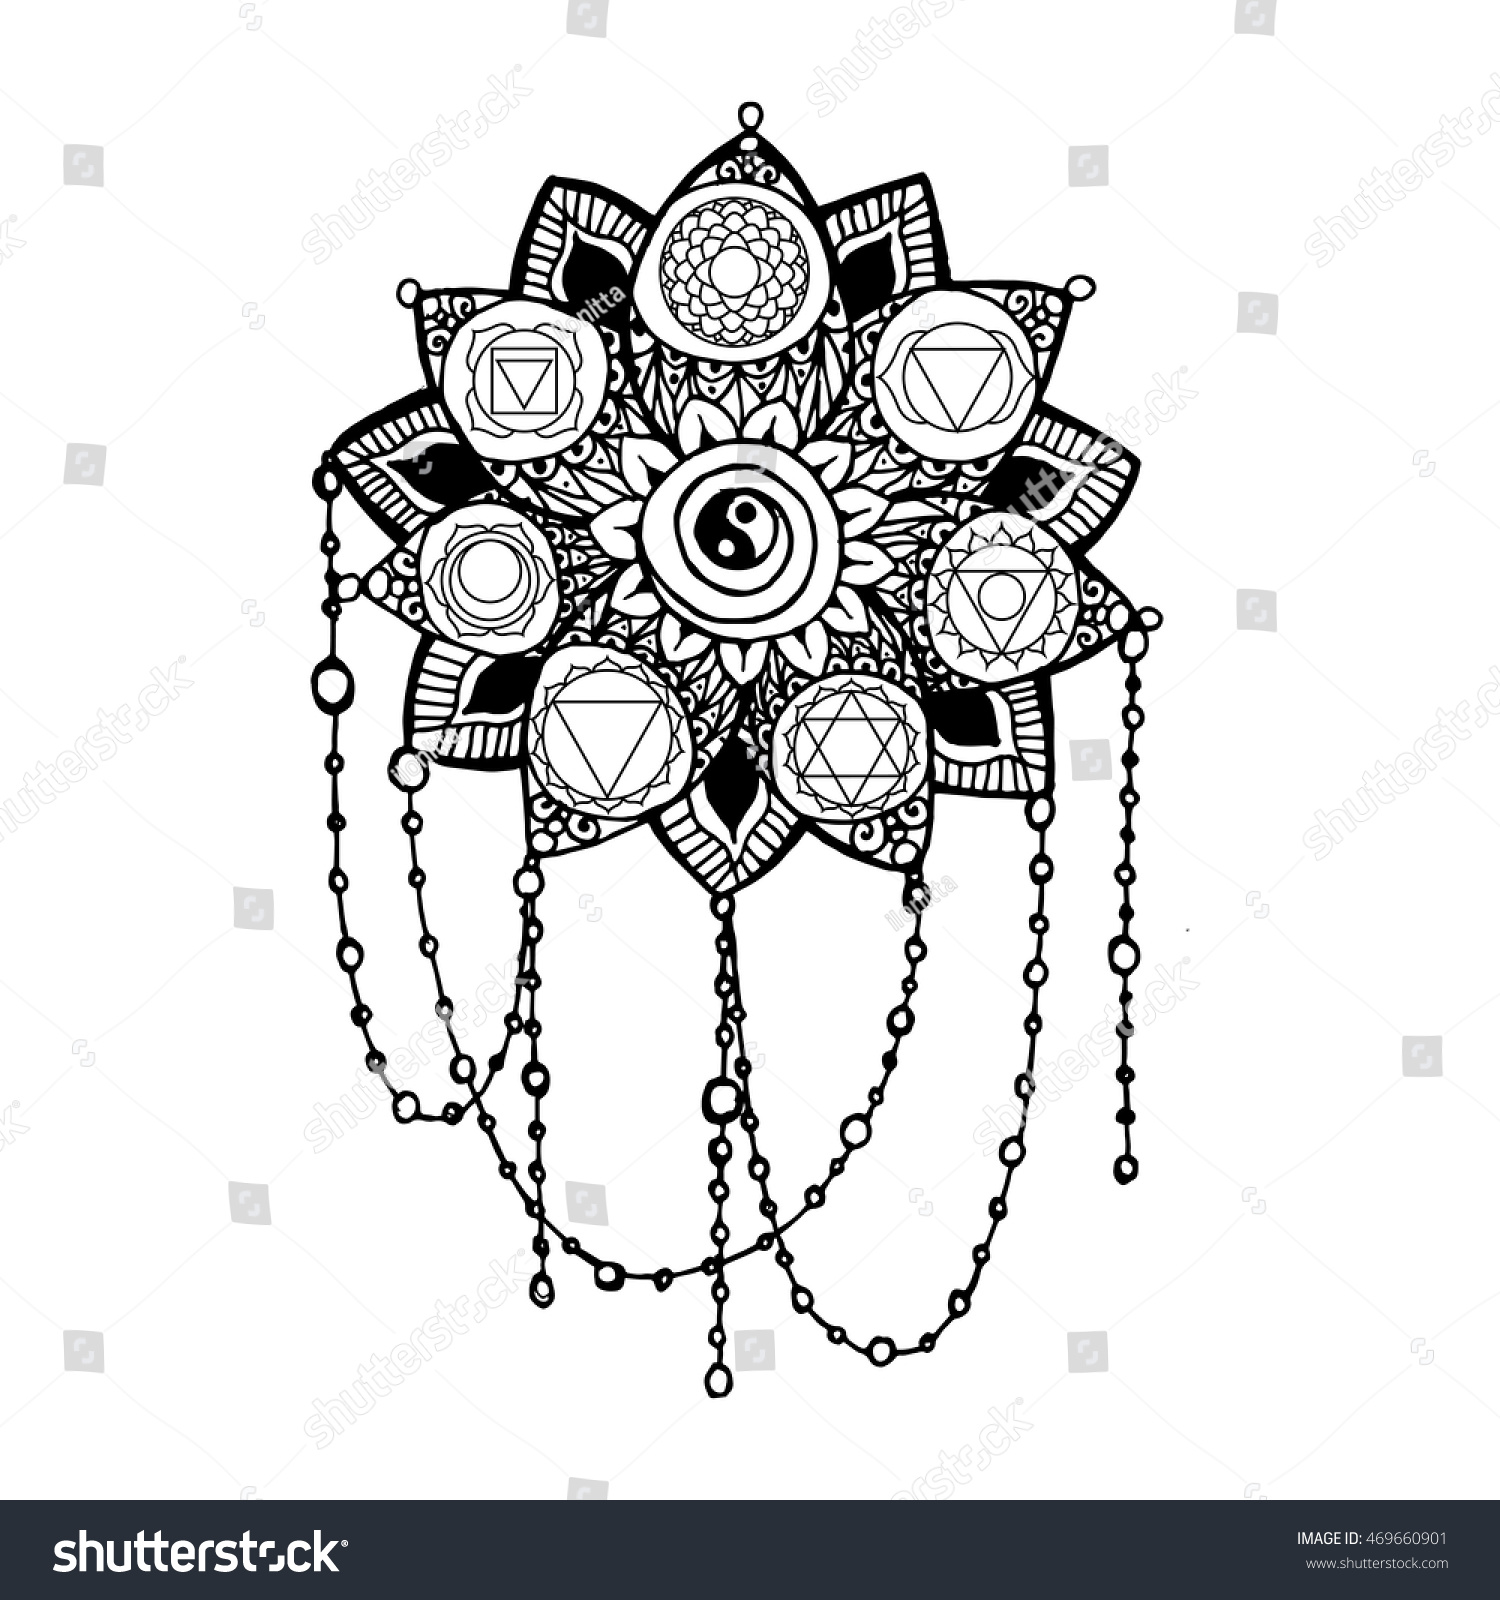 doodle style monochrome black line art stock vector 469660901